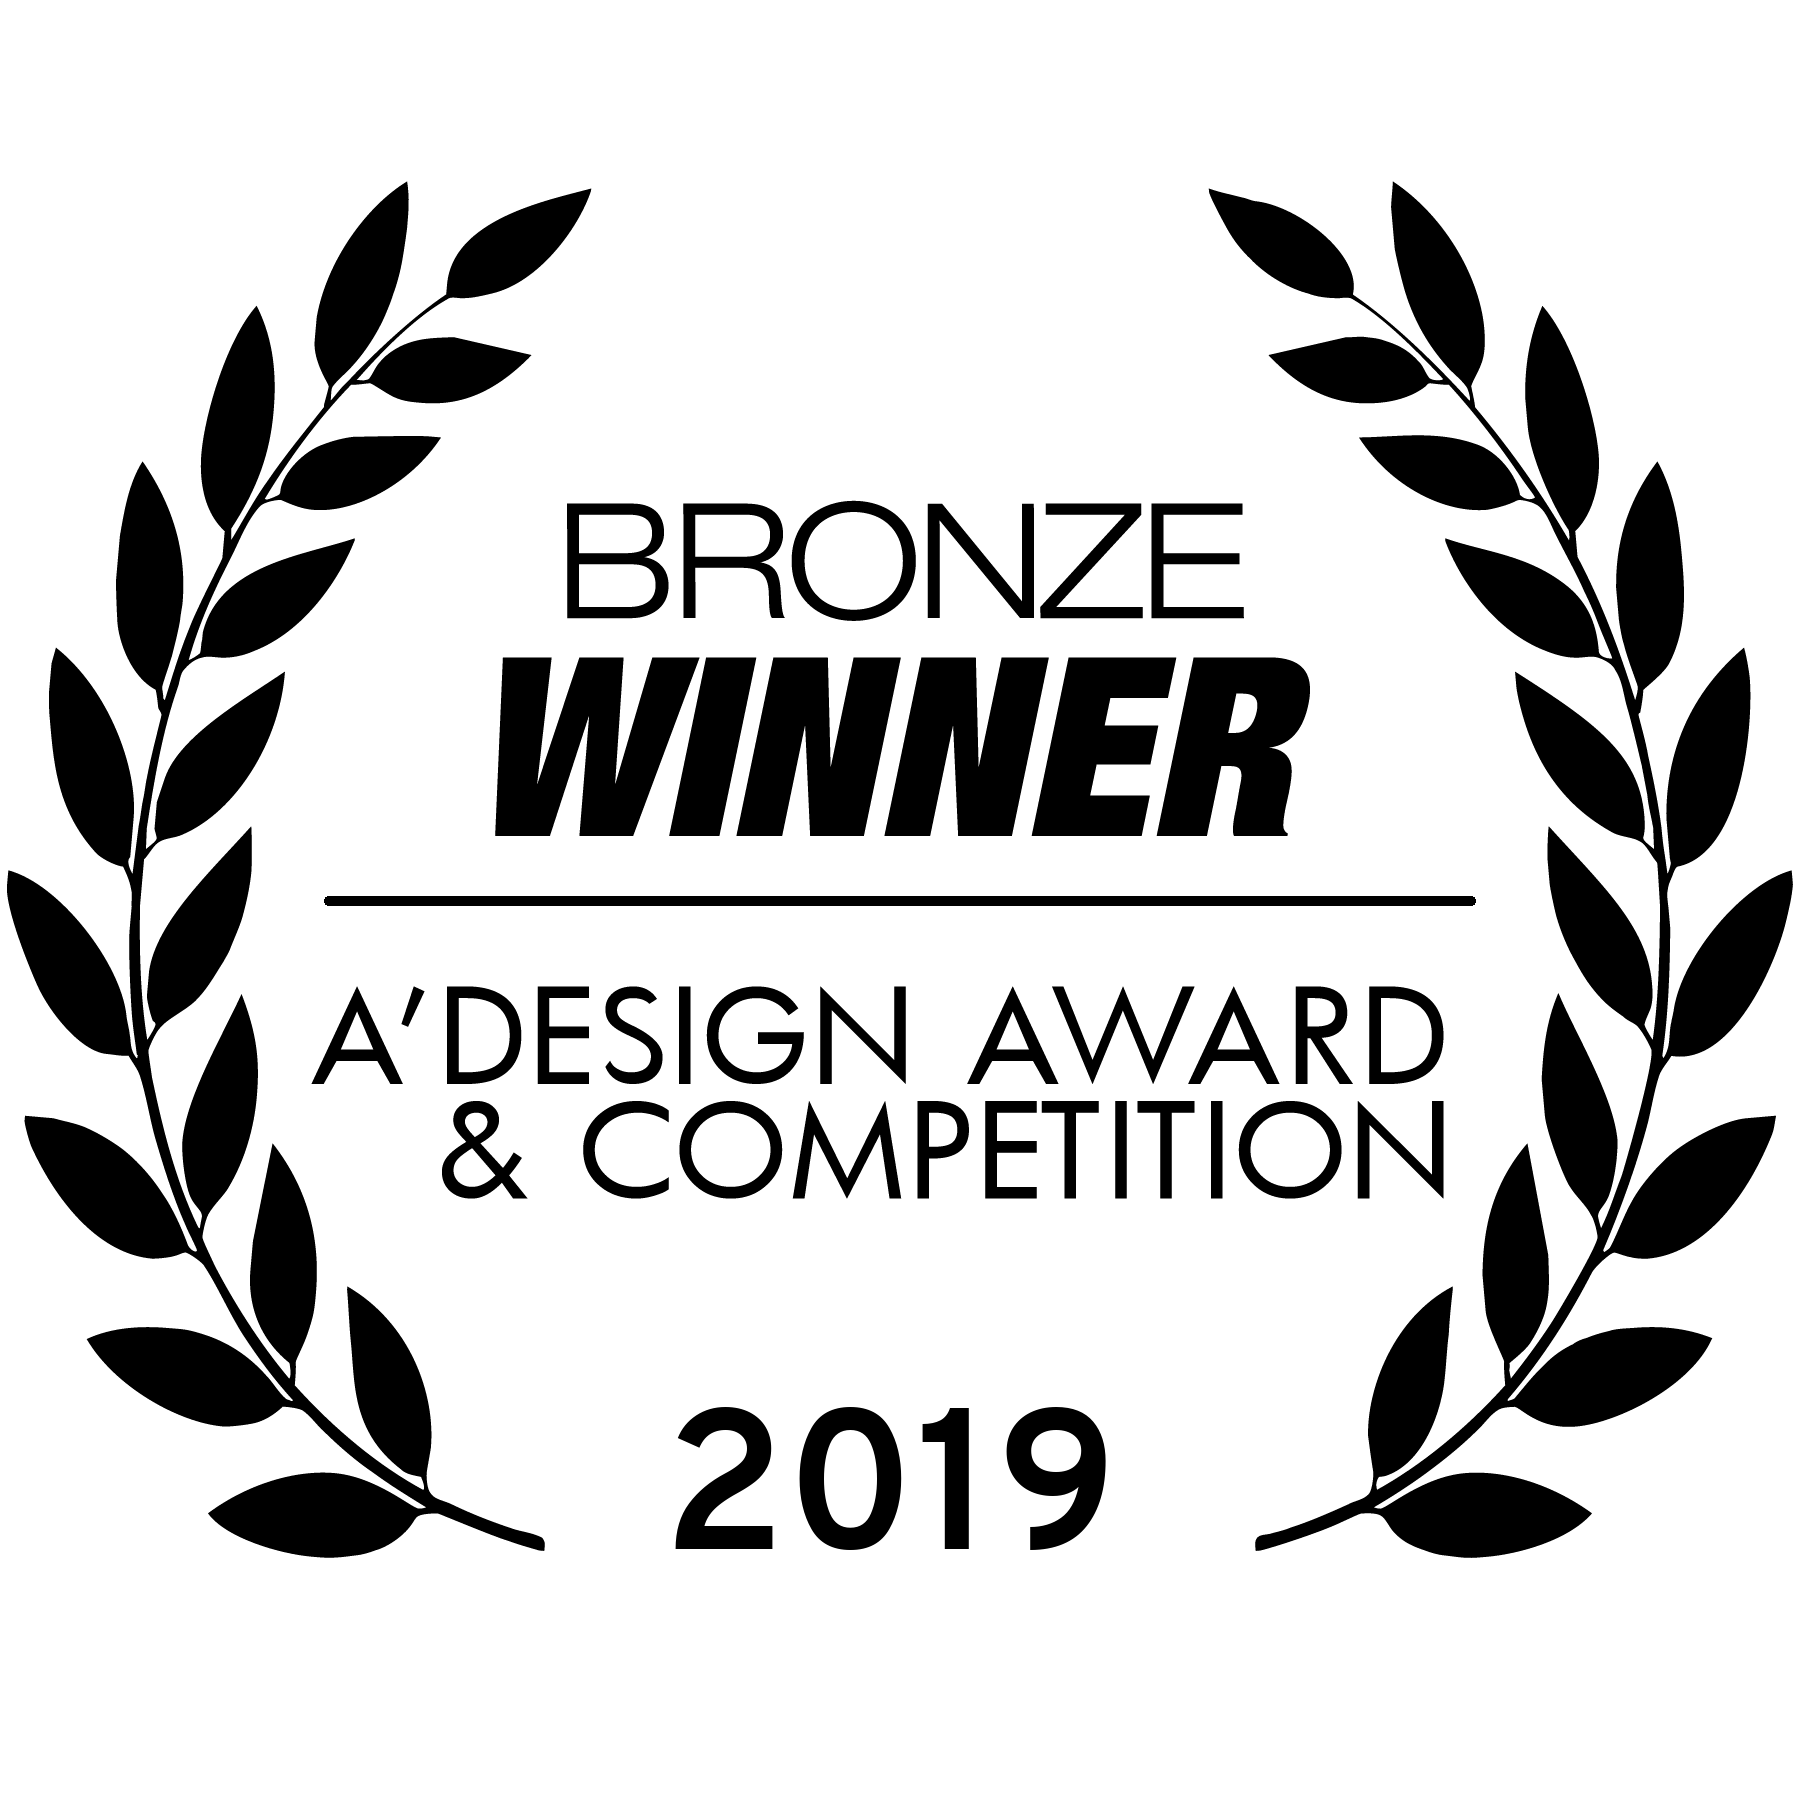 A design award winner 2019 BRONZE